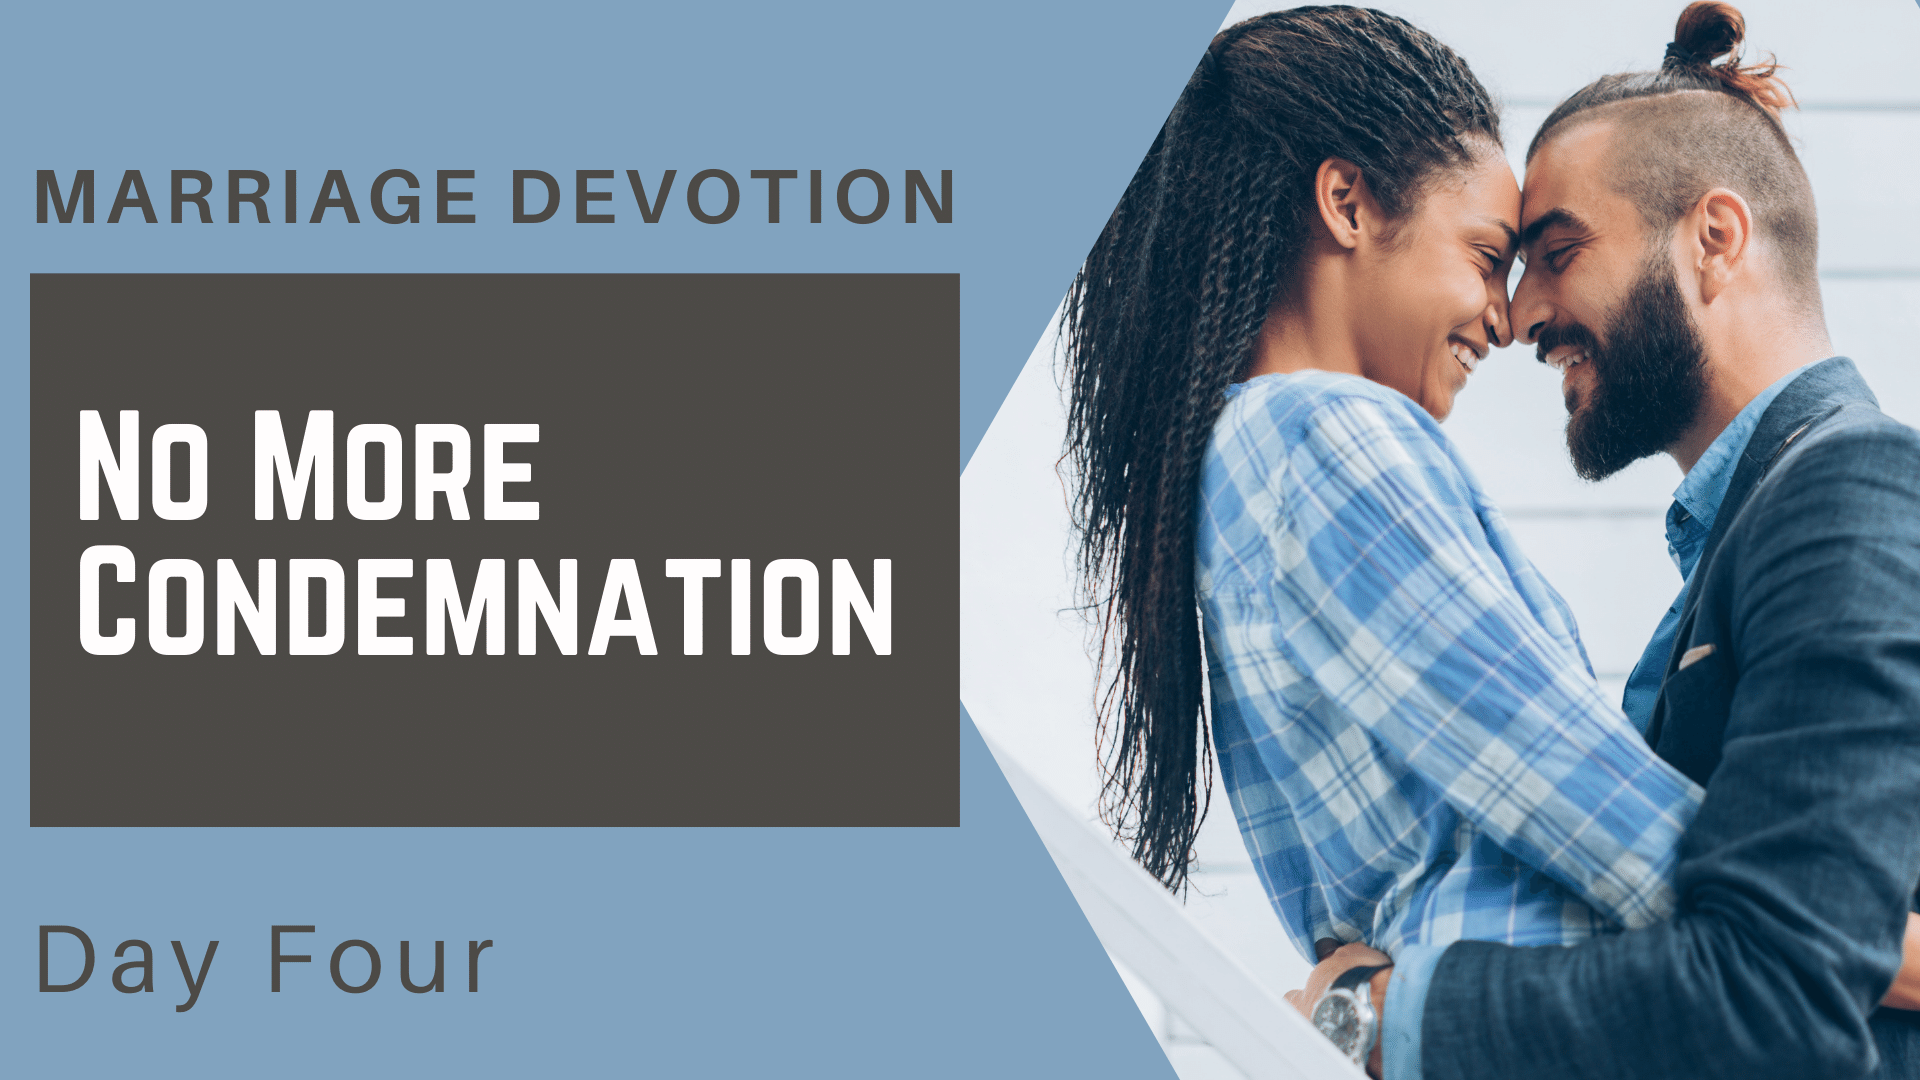 Marriage Devotion Day 4 – No More Condemnation (1)